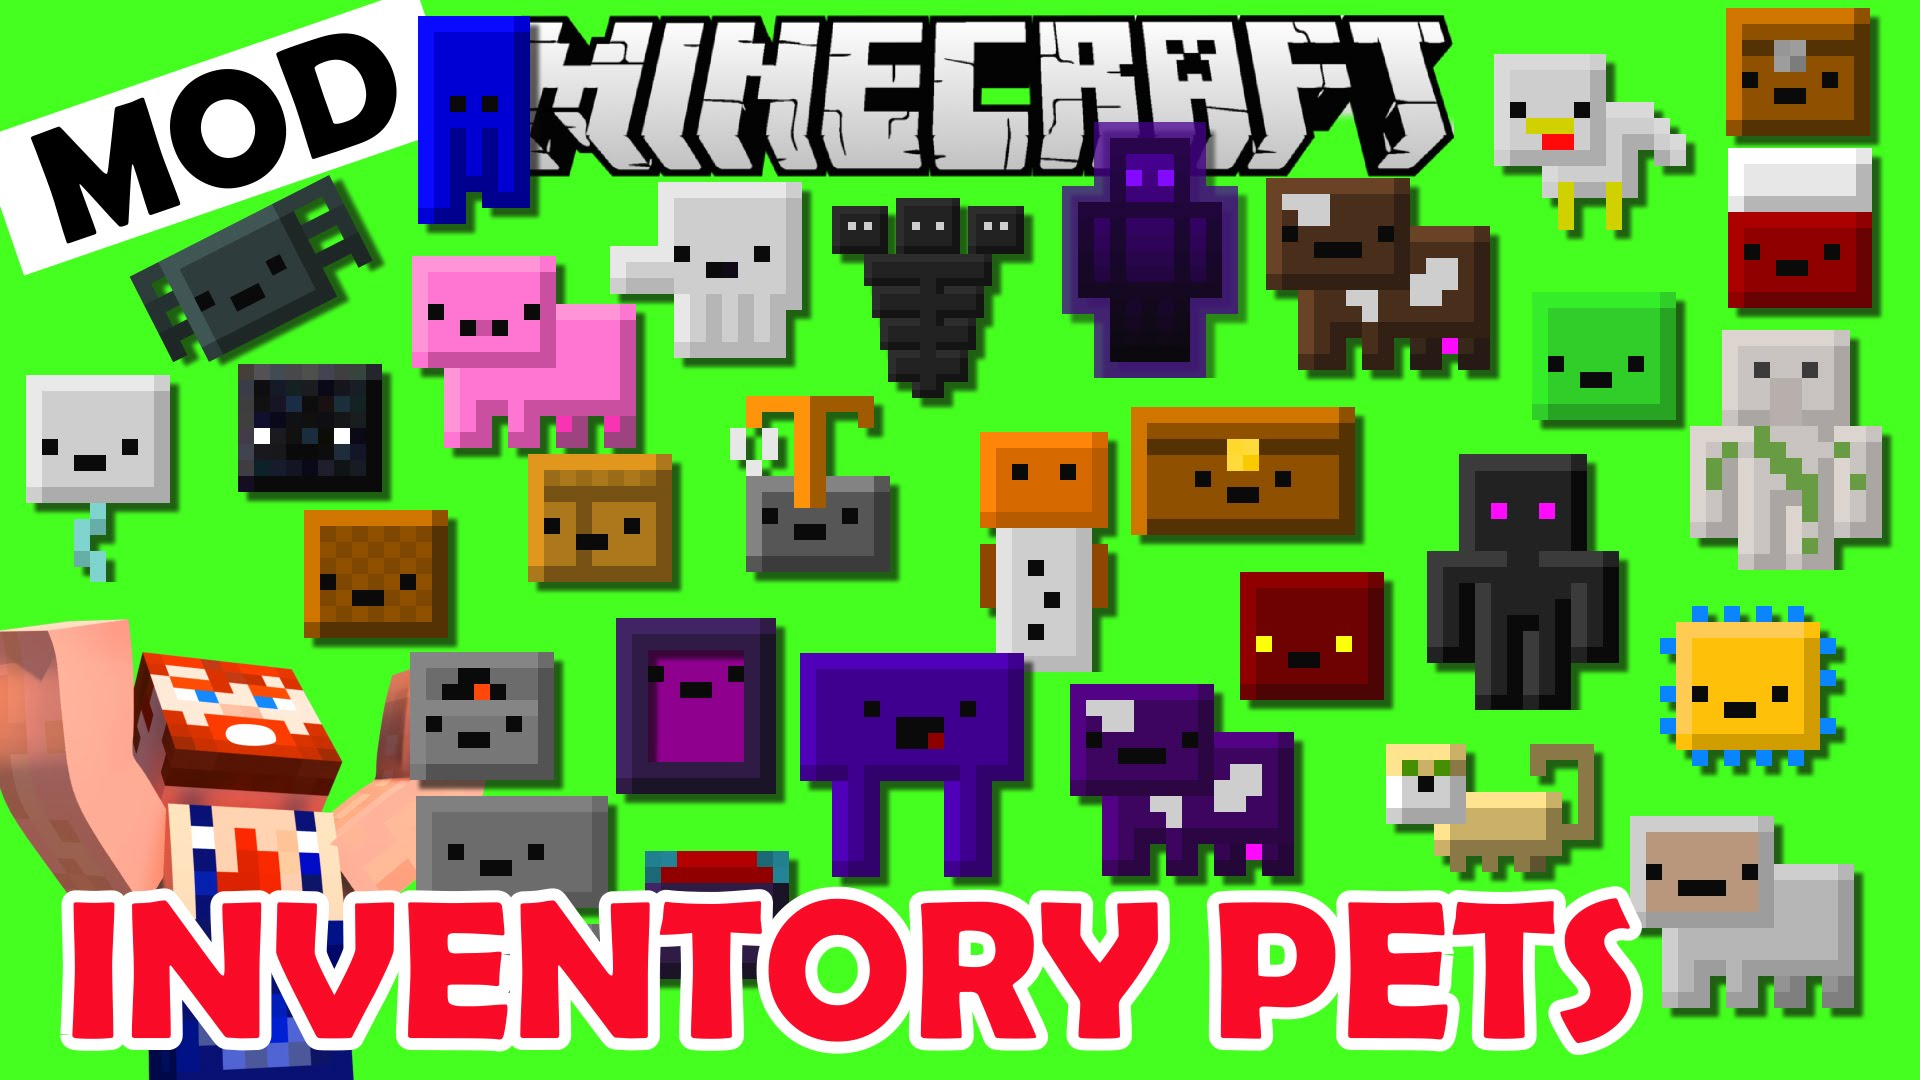 Inventory Pets Mod for Minecraft 1.11.2/1.10.2/1.9.4 ...